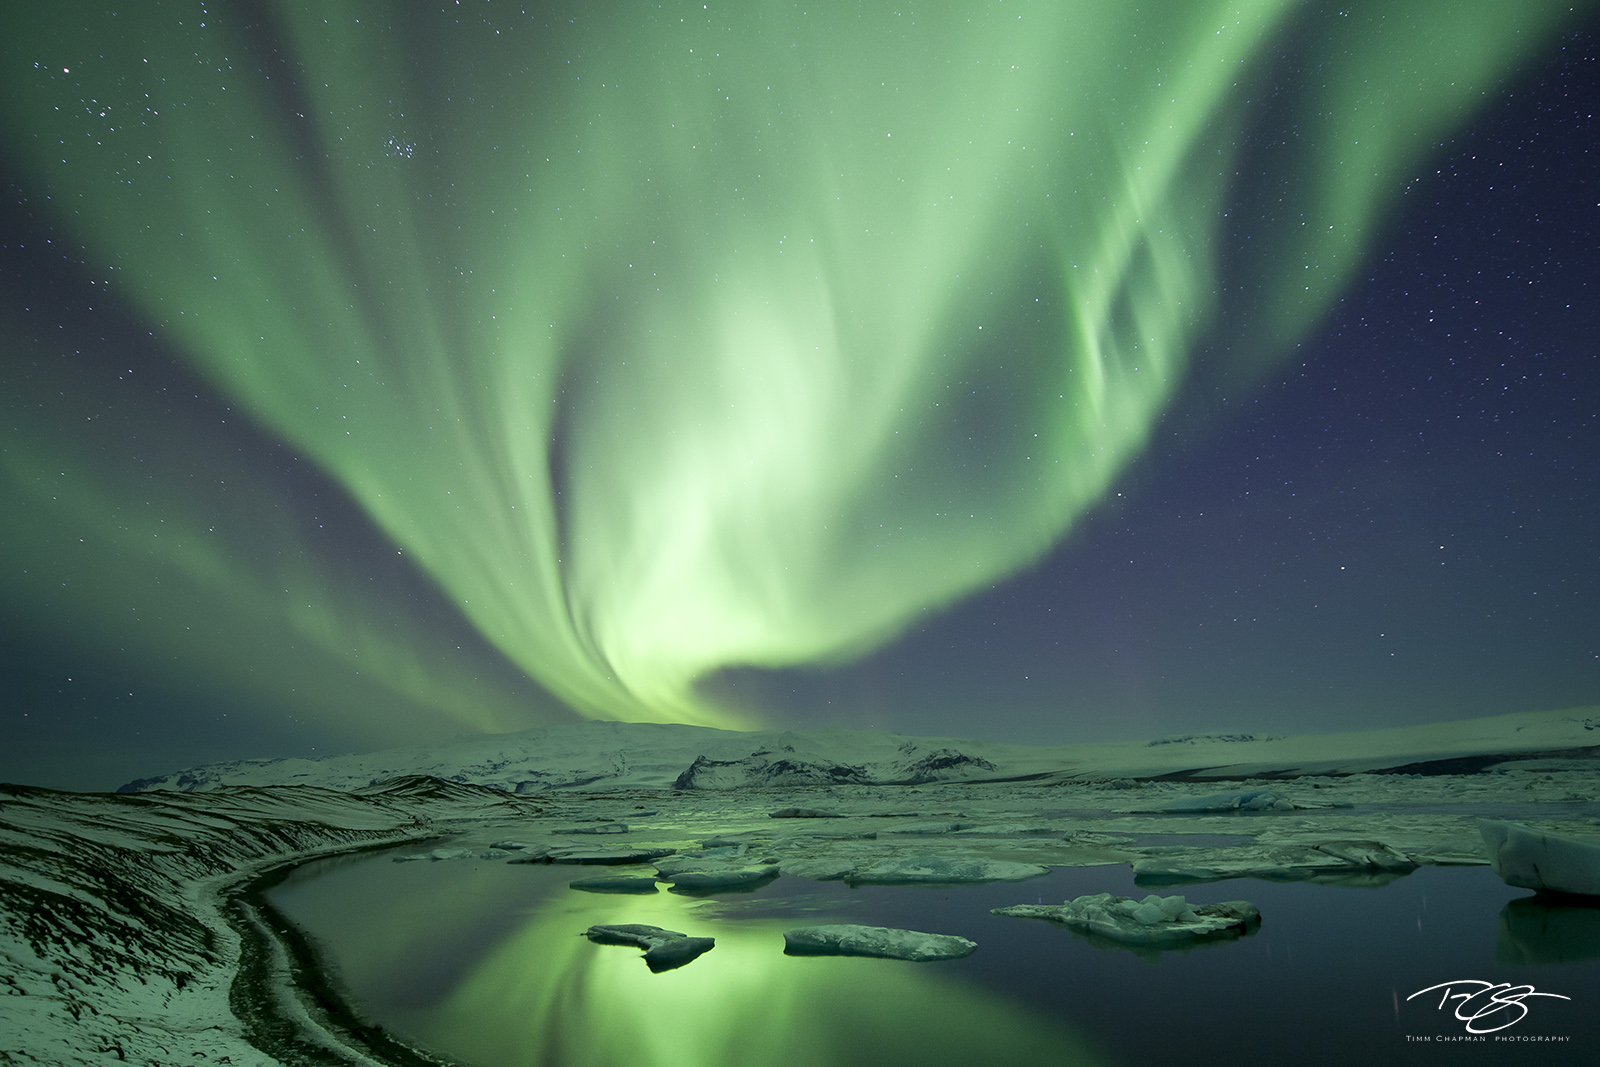 iceland, aurora, borealis, ribbon of light, jokulsarlon, Jökulsárlón, glacier lagoon, mountains, reflection, water, green, violet, stars, northern lights, spirit, coronal mass ejection, solar flare, photo